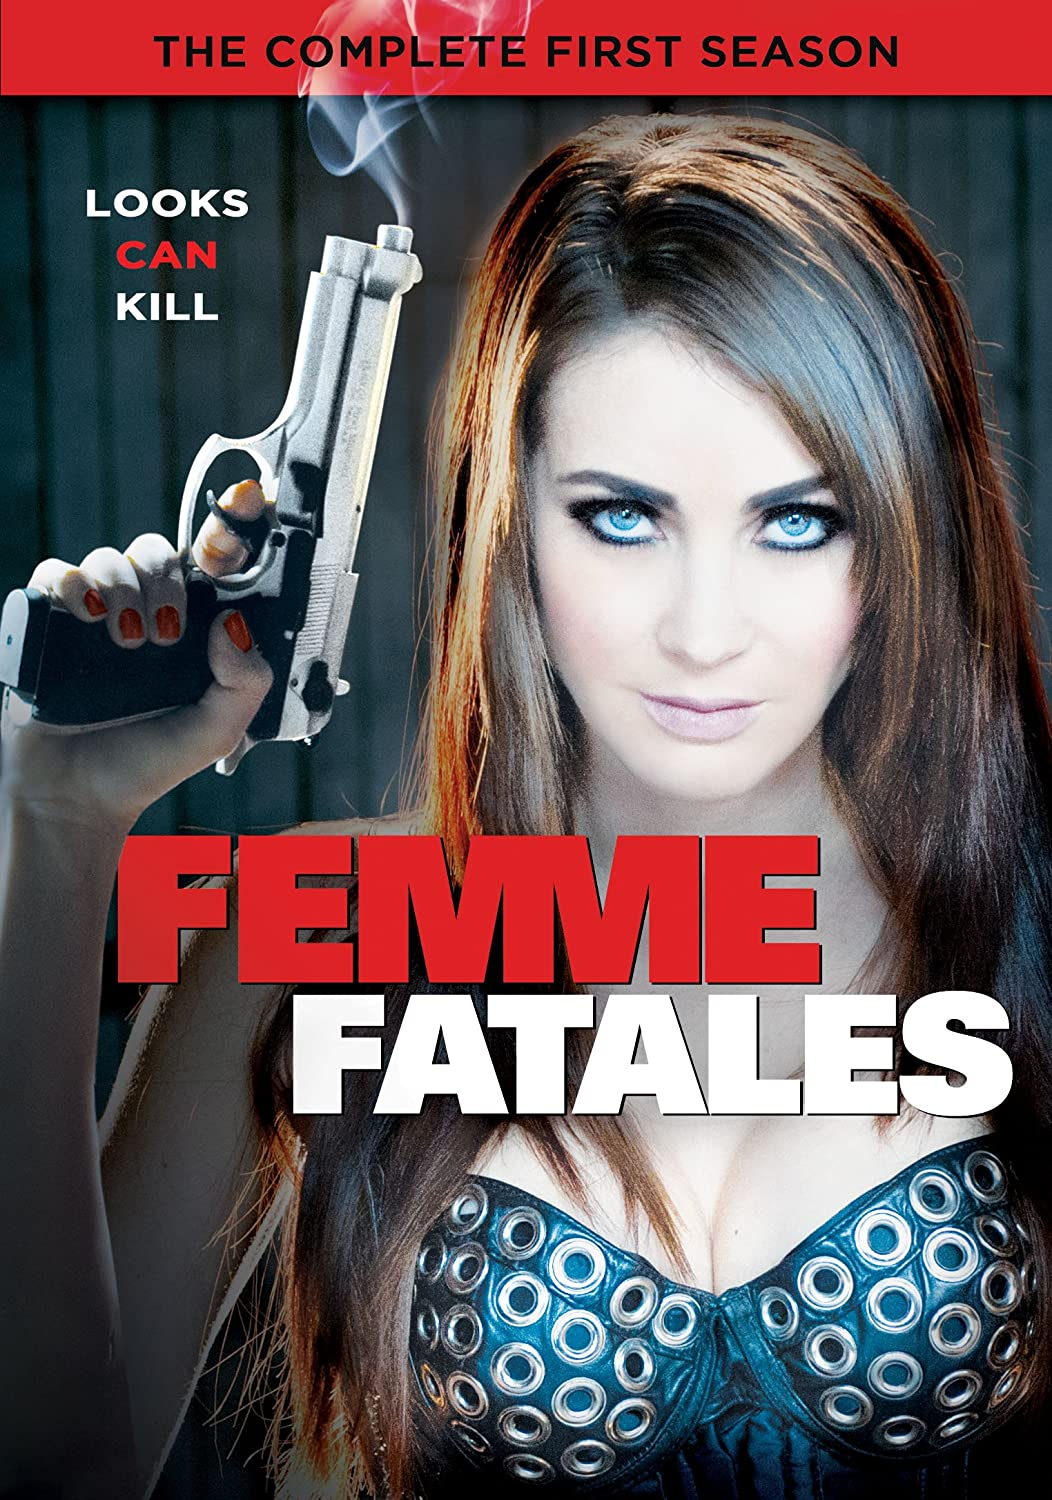 Amazon.com: Femme Fatales: Season 1: Tanit Phoenix, Rick Copp, Christine  Donlon, Catherine Annette, Madison Dylan, Darin Scott, Robert Meyer  Burnett, ...